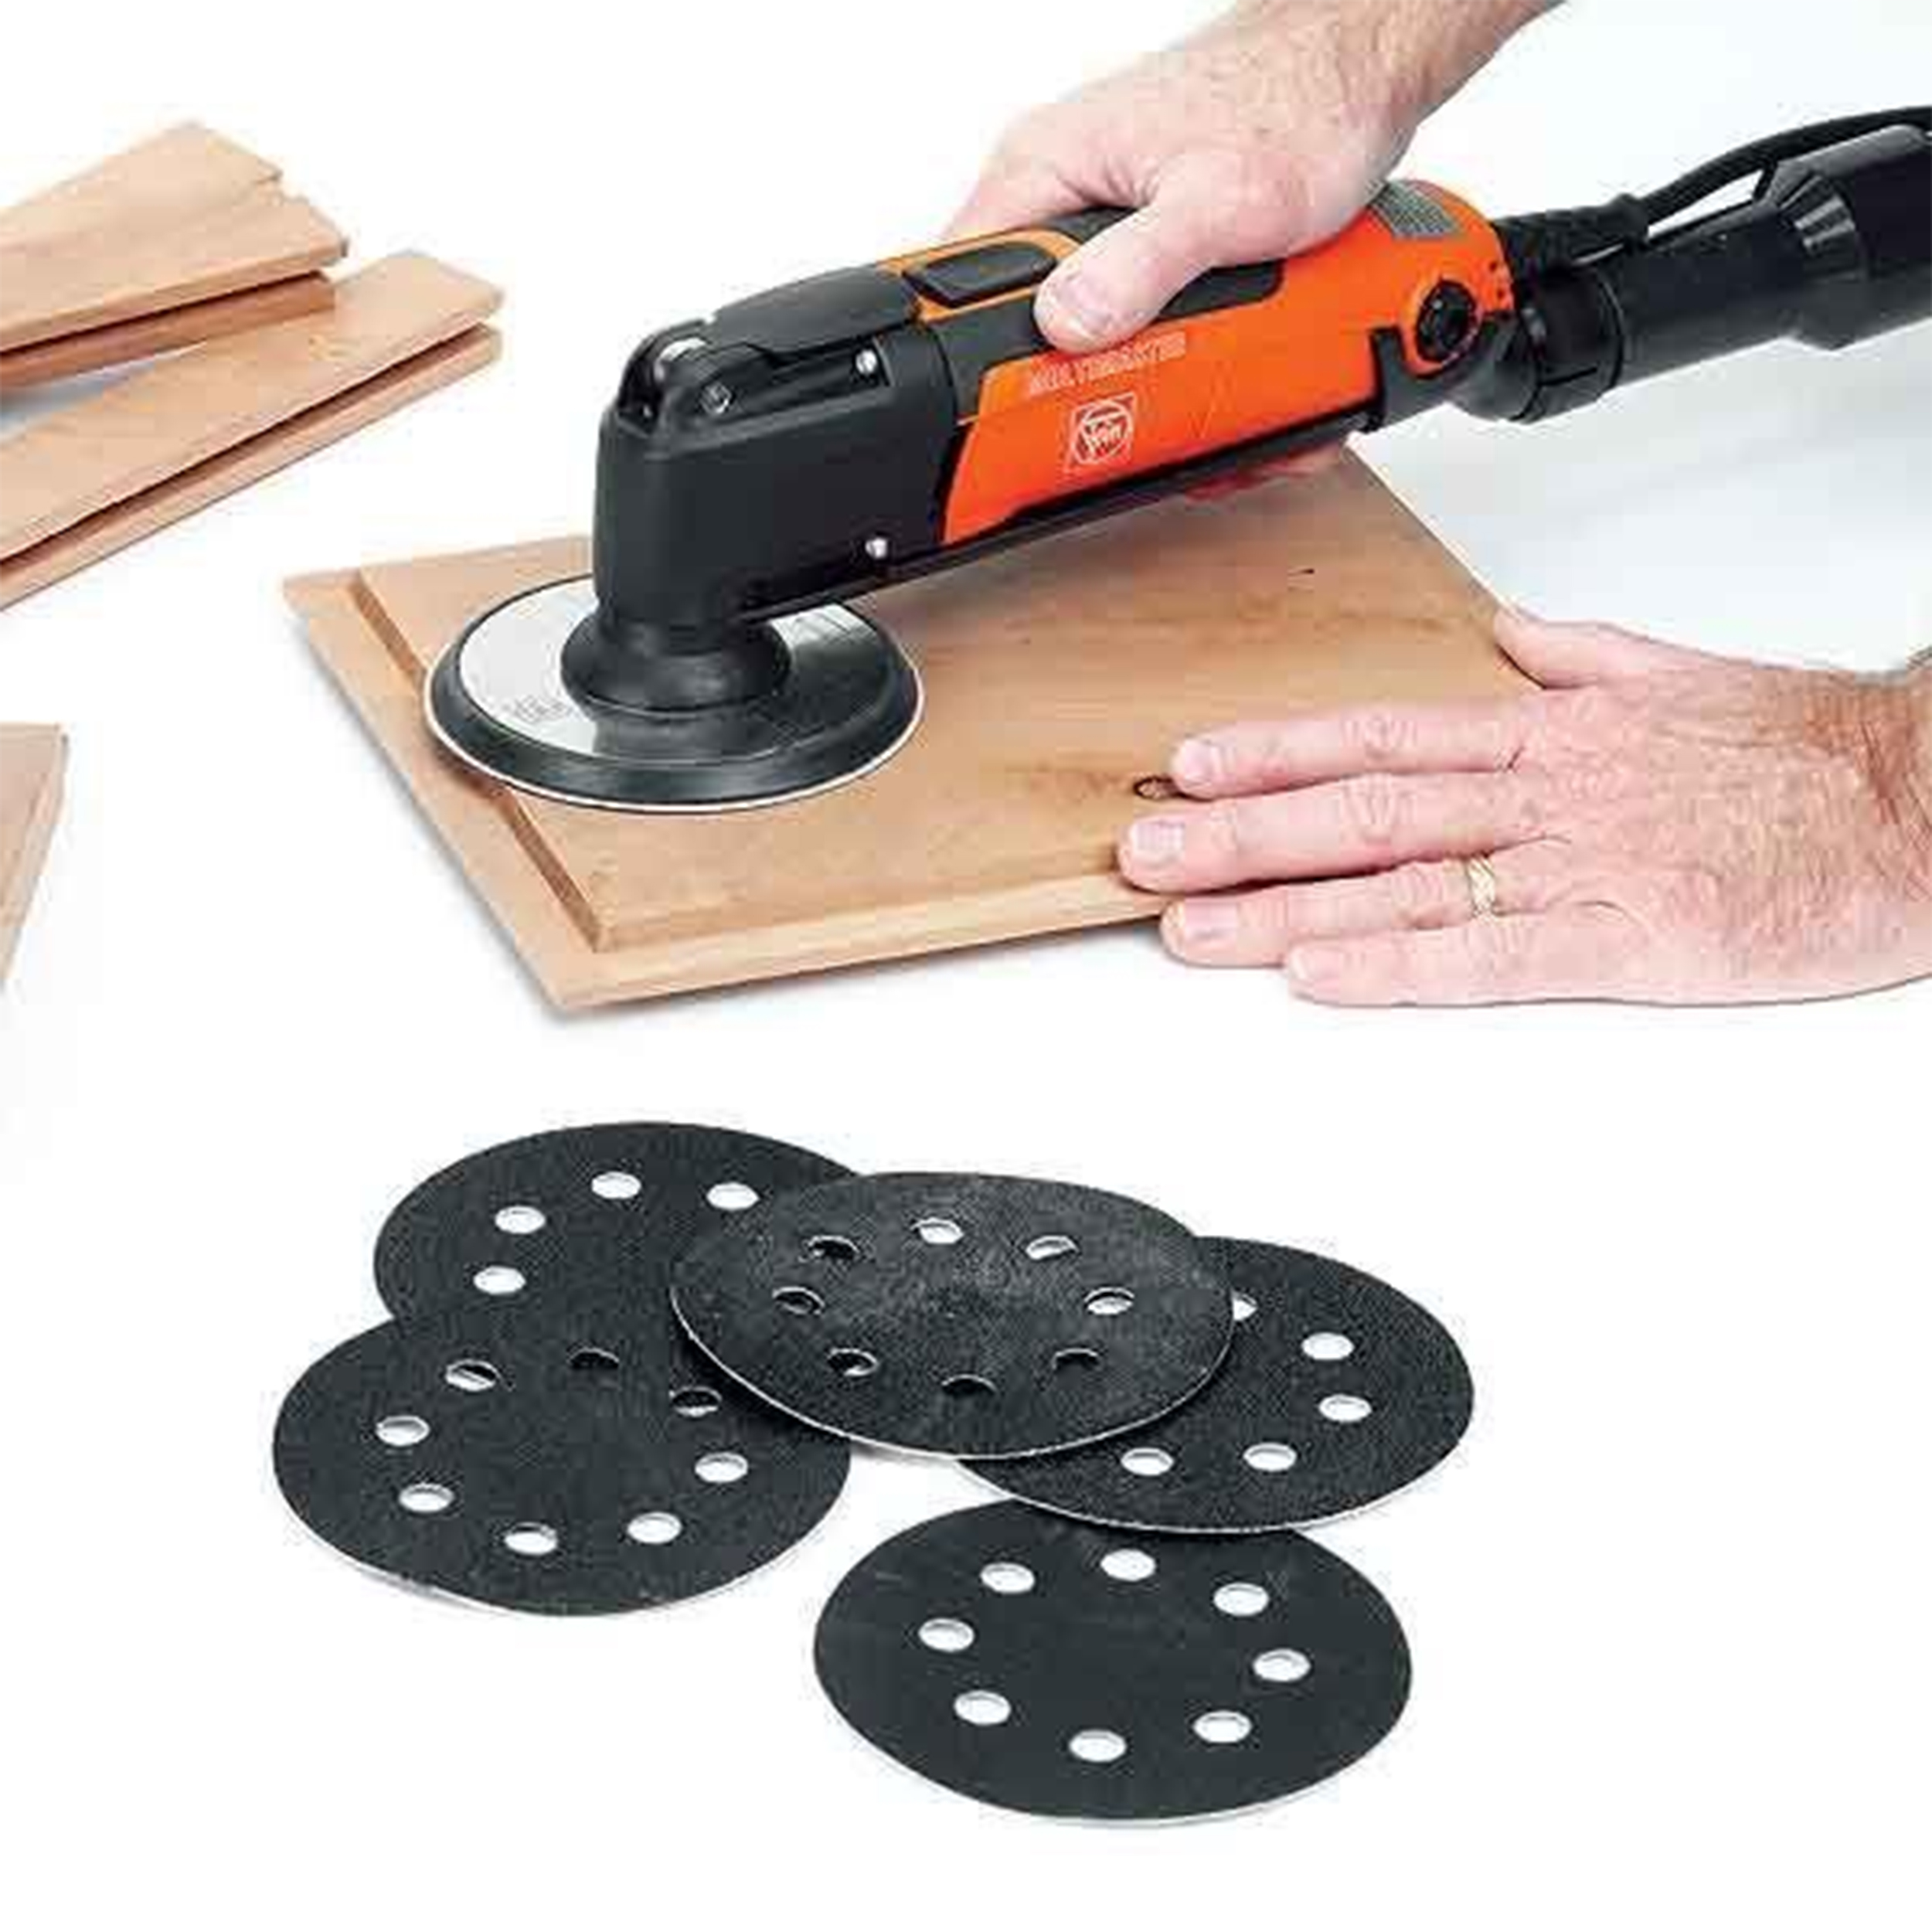 Fein MultiMaster Sanding Pad Kit by Fein Power Tools Inc.